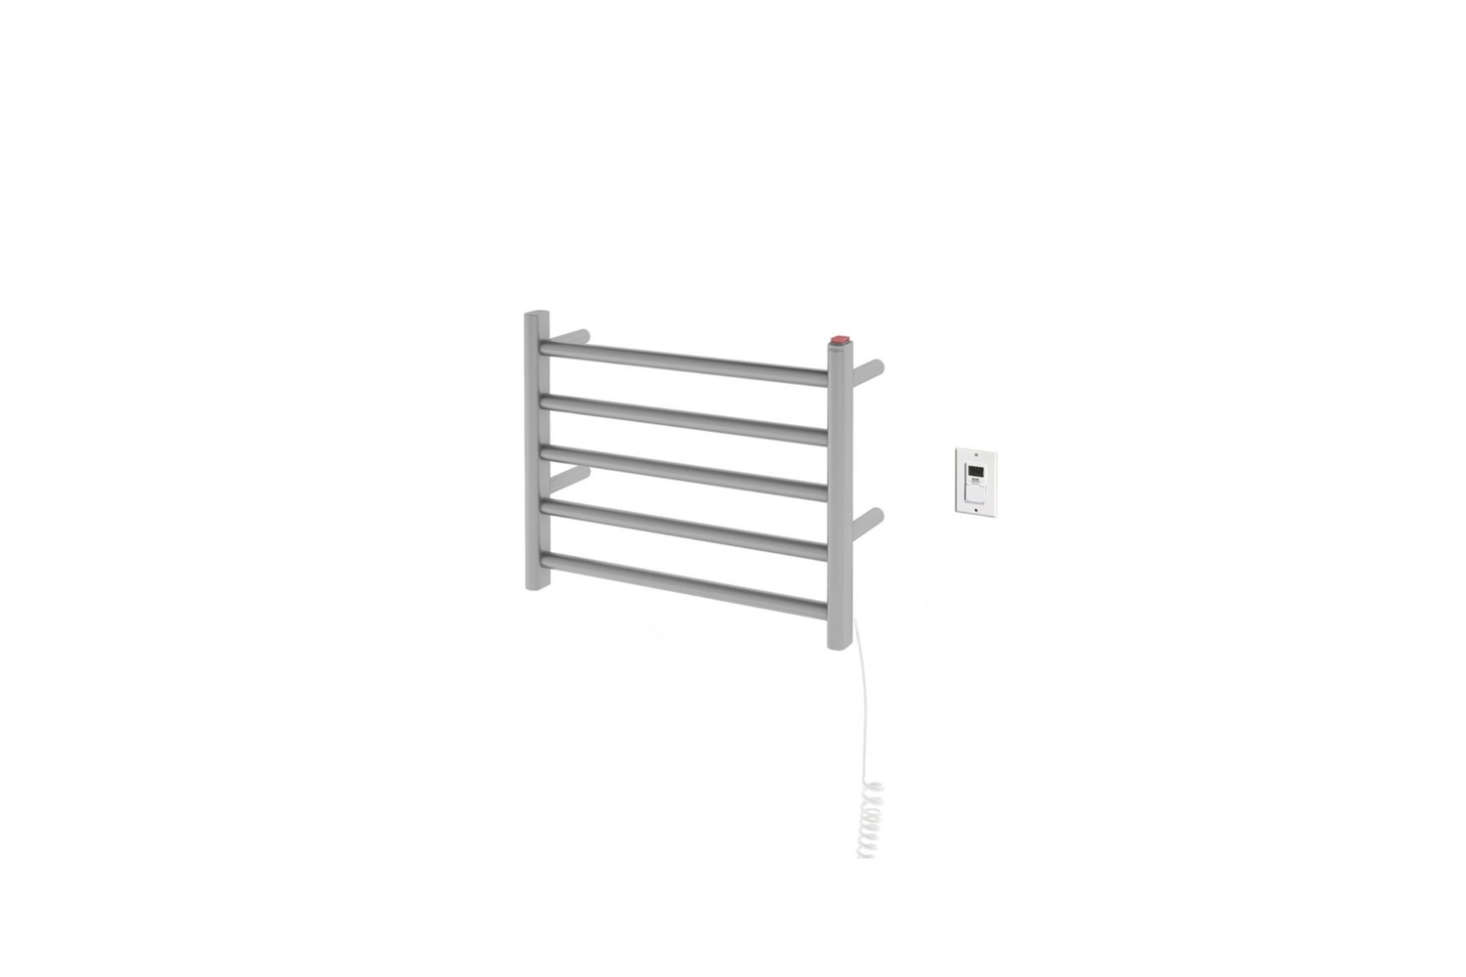 The compact Ancona Prima Dual Hardwired Electric Towel Warmer in Brushed Stainless Steel is $219.99 at The Home Depot.